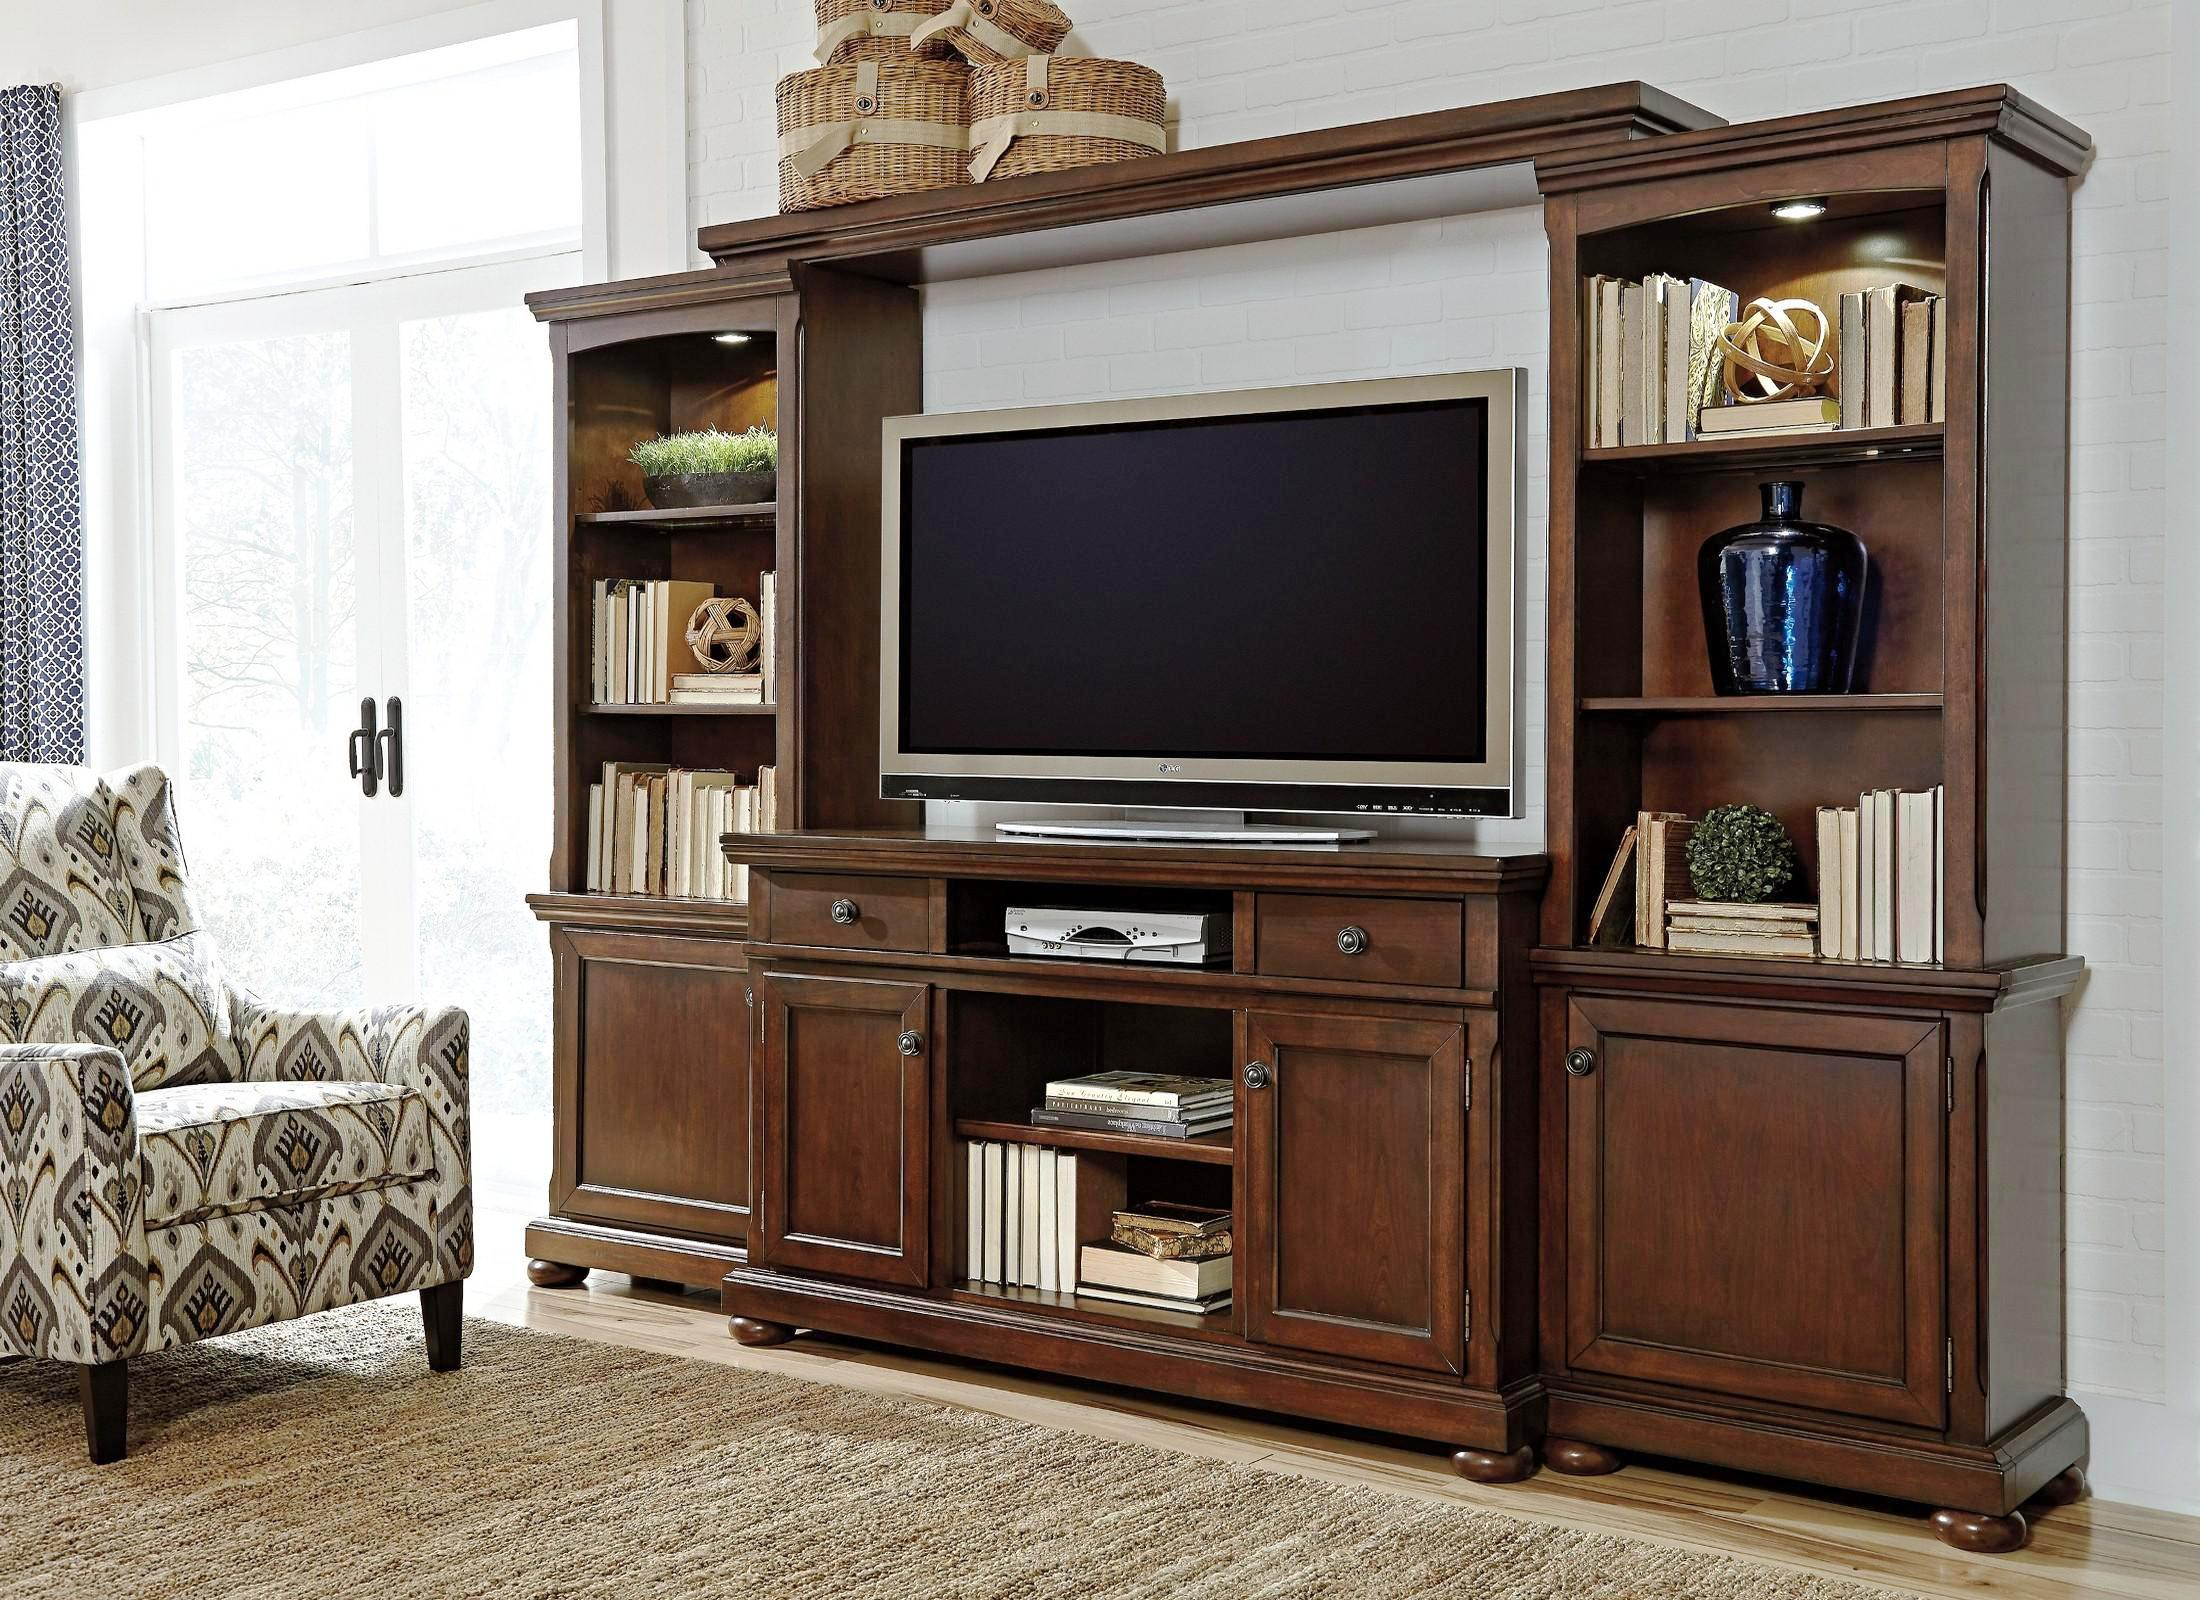 Image of: Ashley Furniture Entertainment Centers